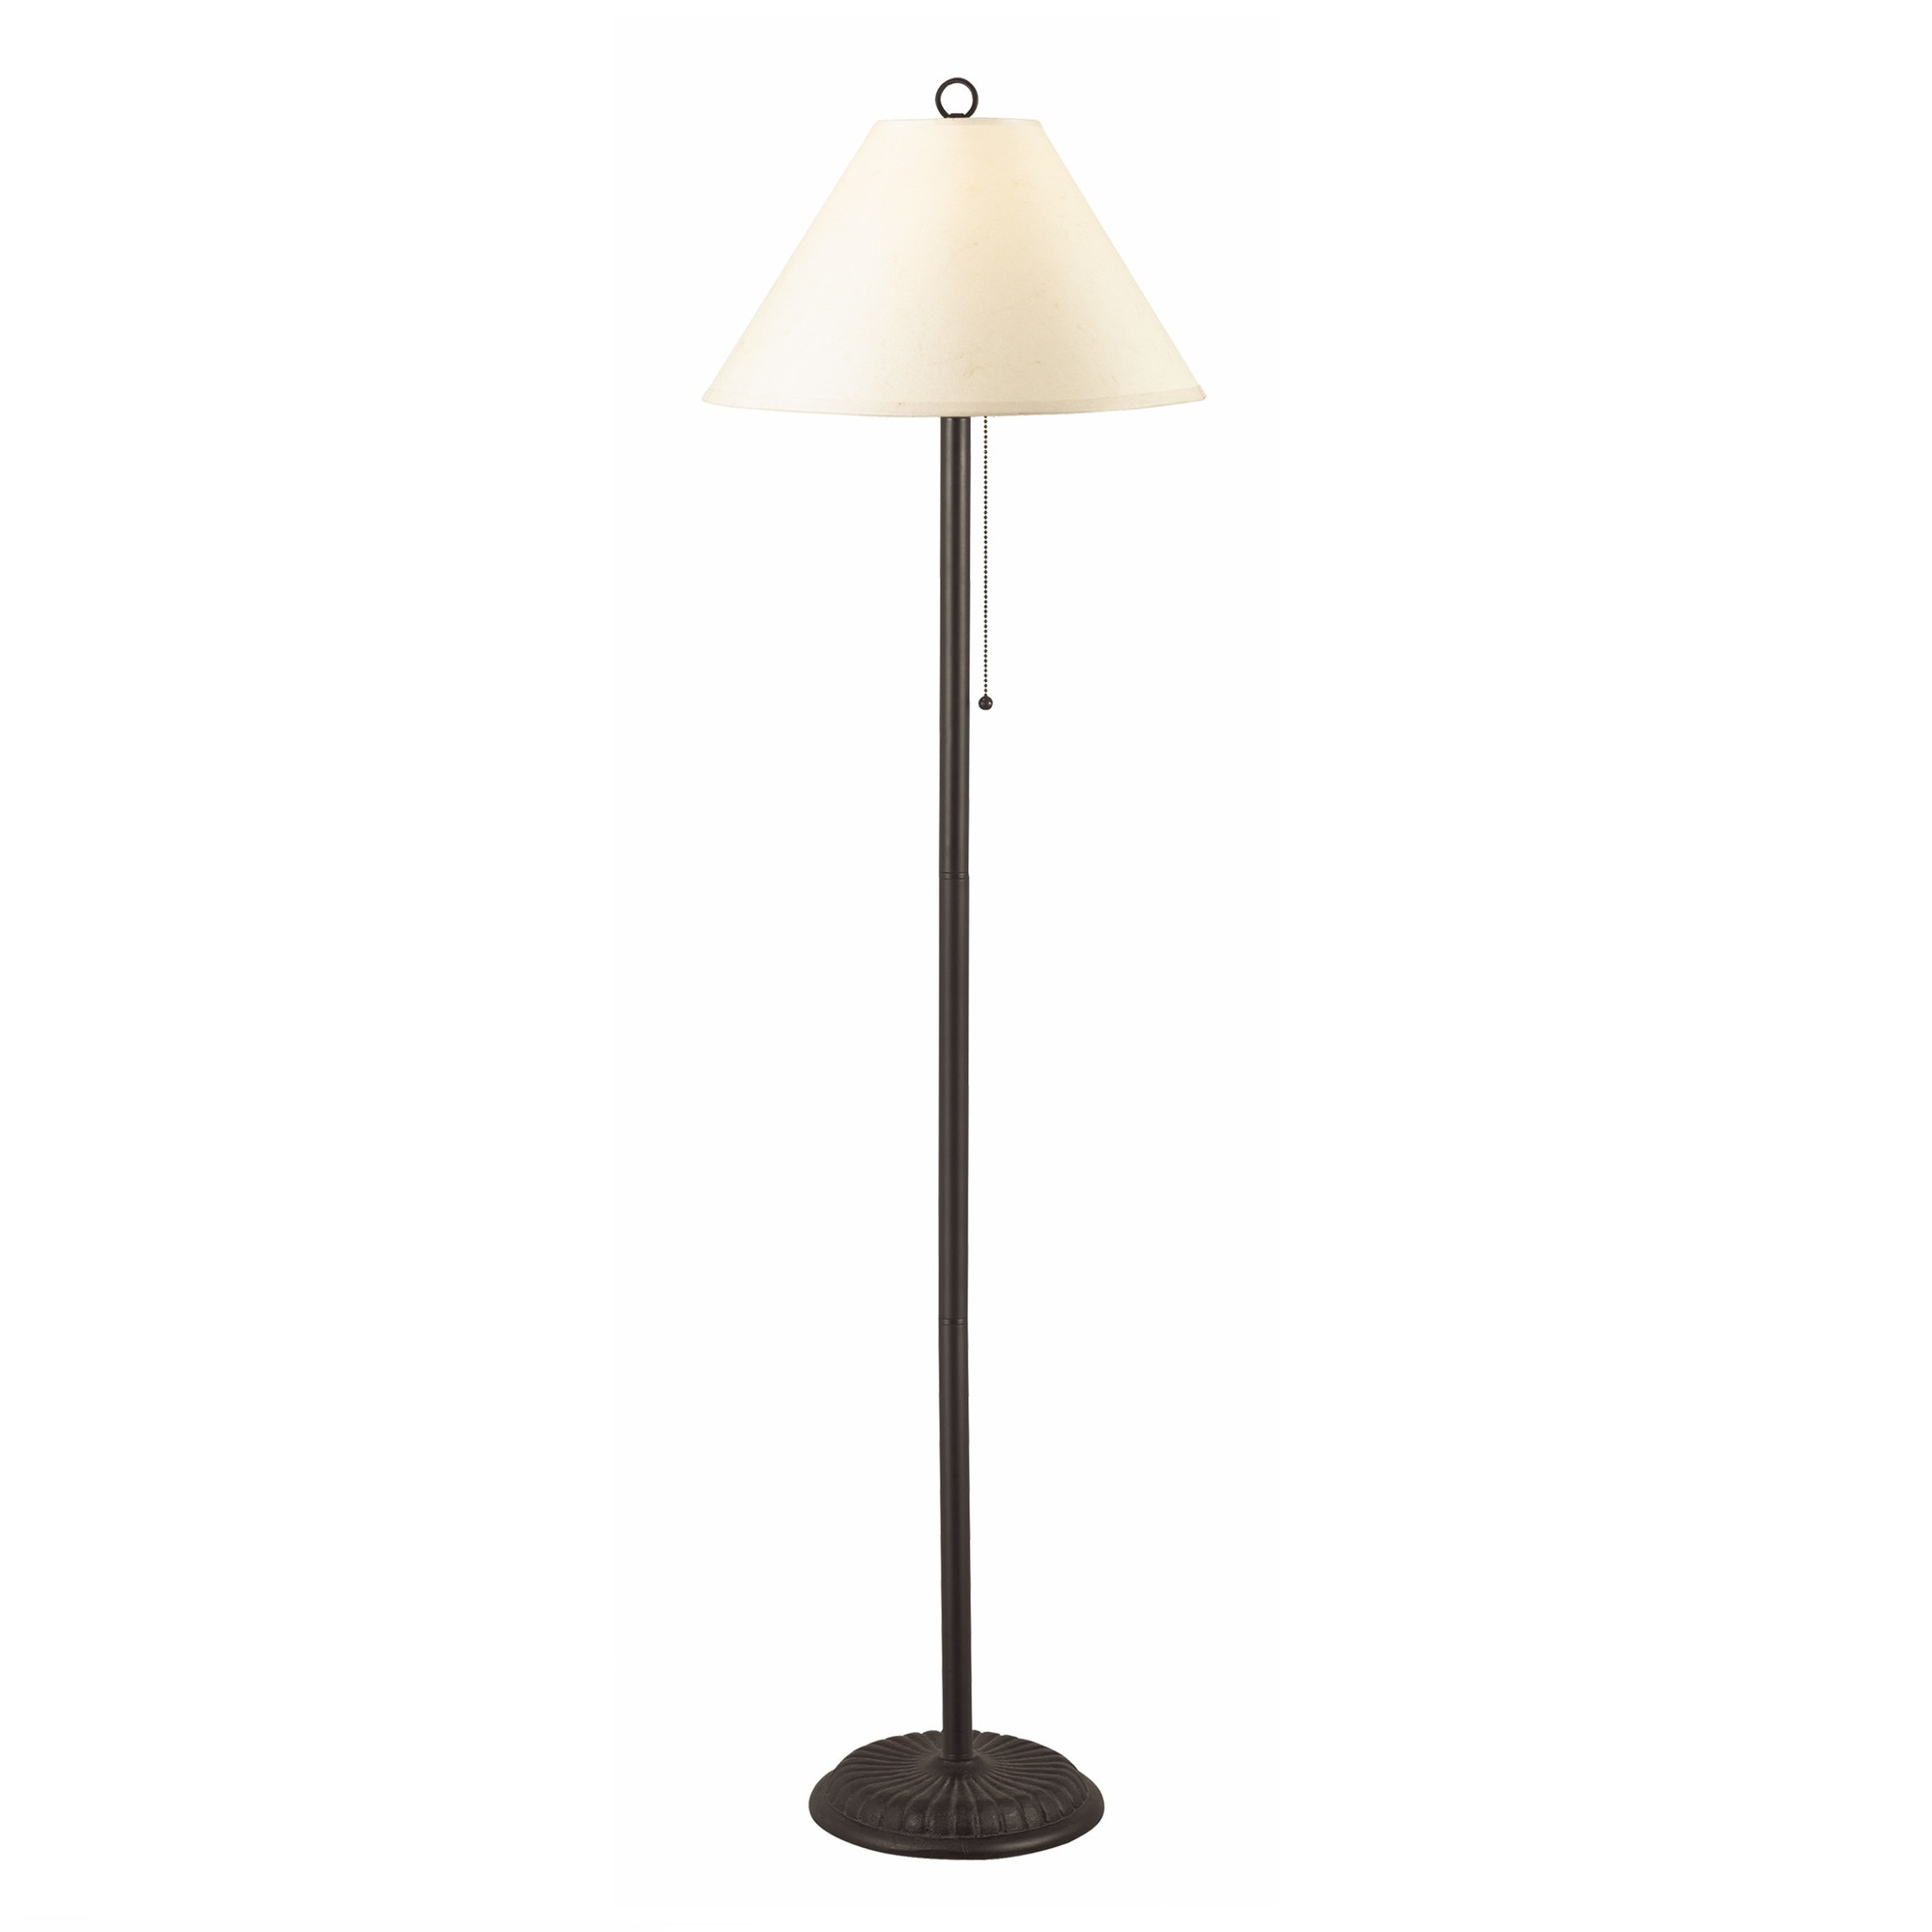 Cal Lighting Candlestick Floor Lamp L Brilliant Source